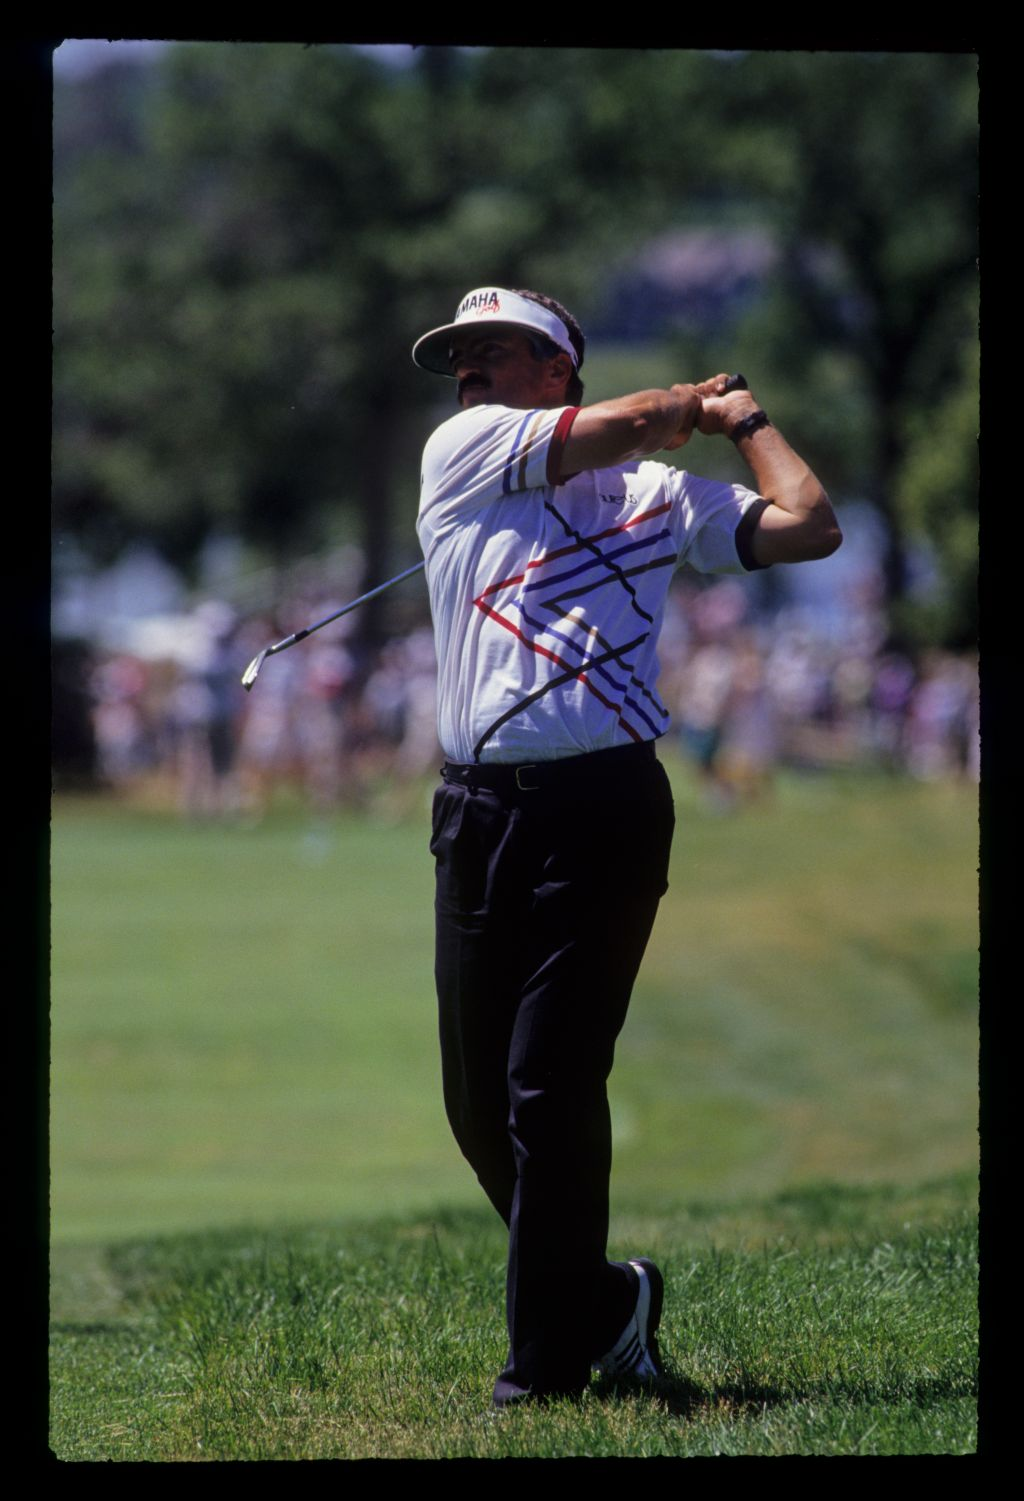 Scott Simpson following through after hitting seven iron from the rough during the 1991 US Open